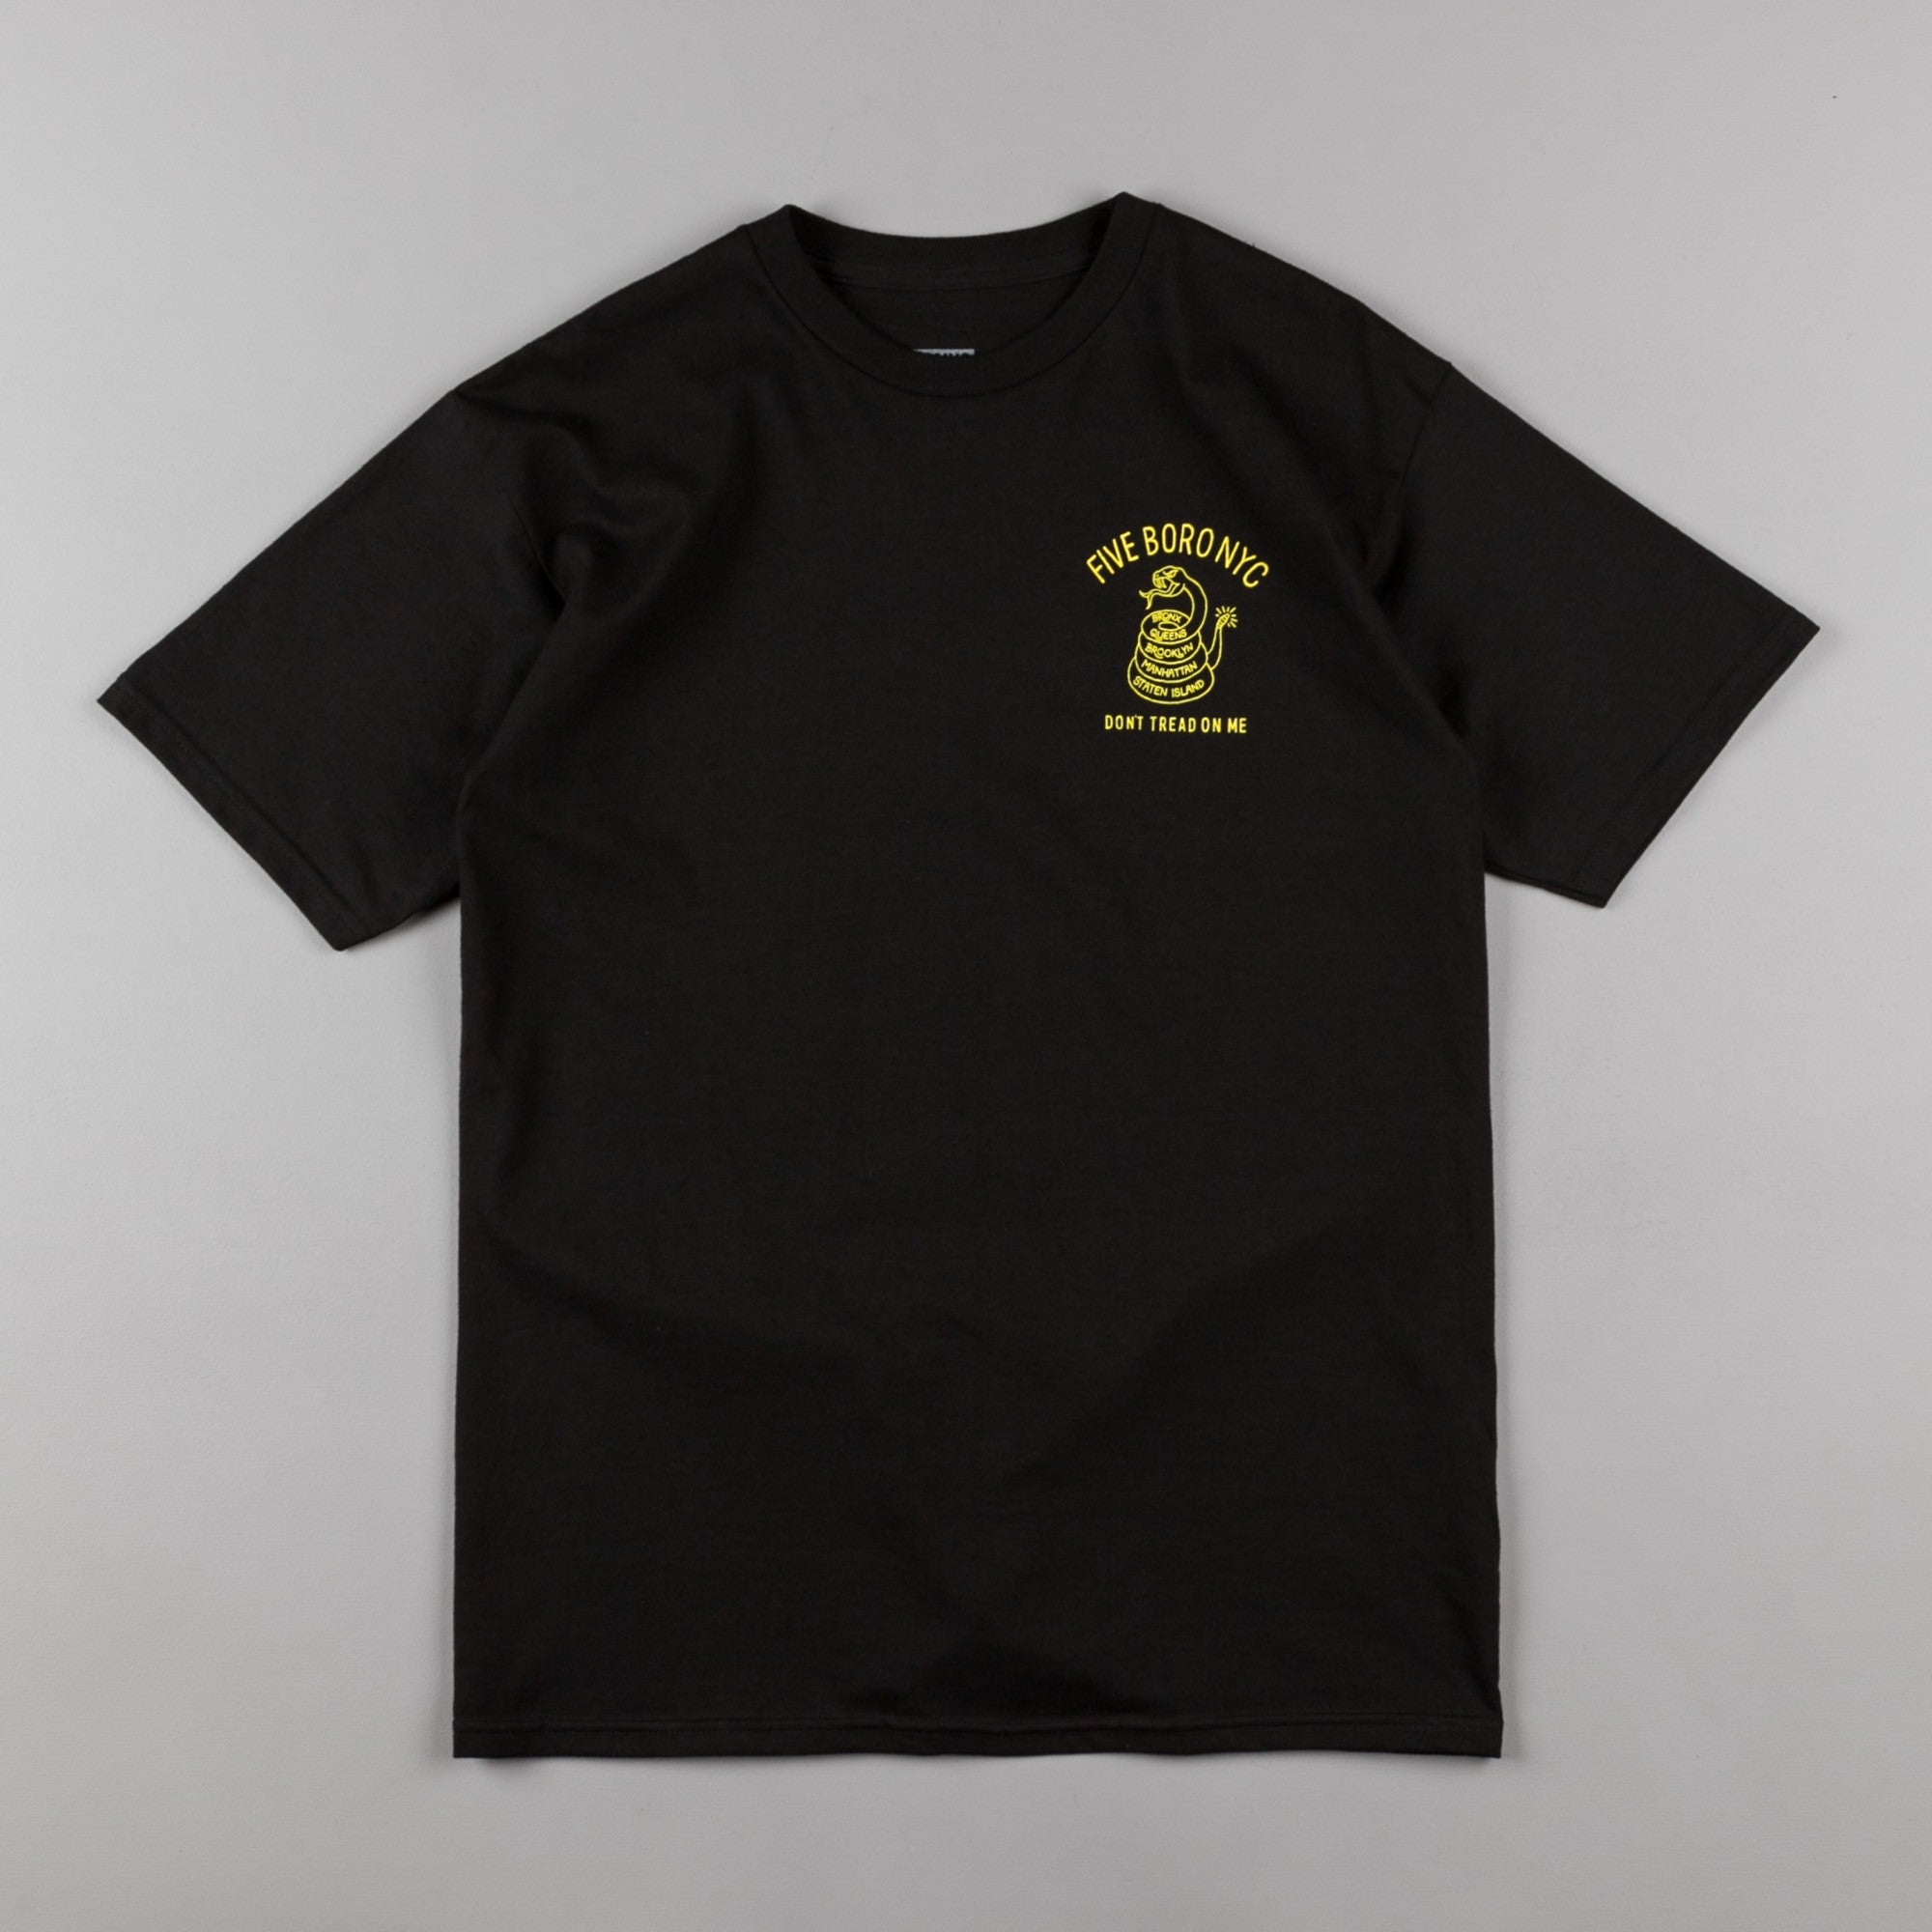 5Boro Don't Tread T-Shirt - Black / Yellow